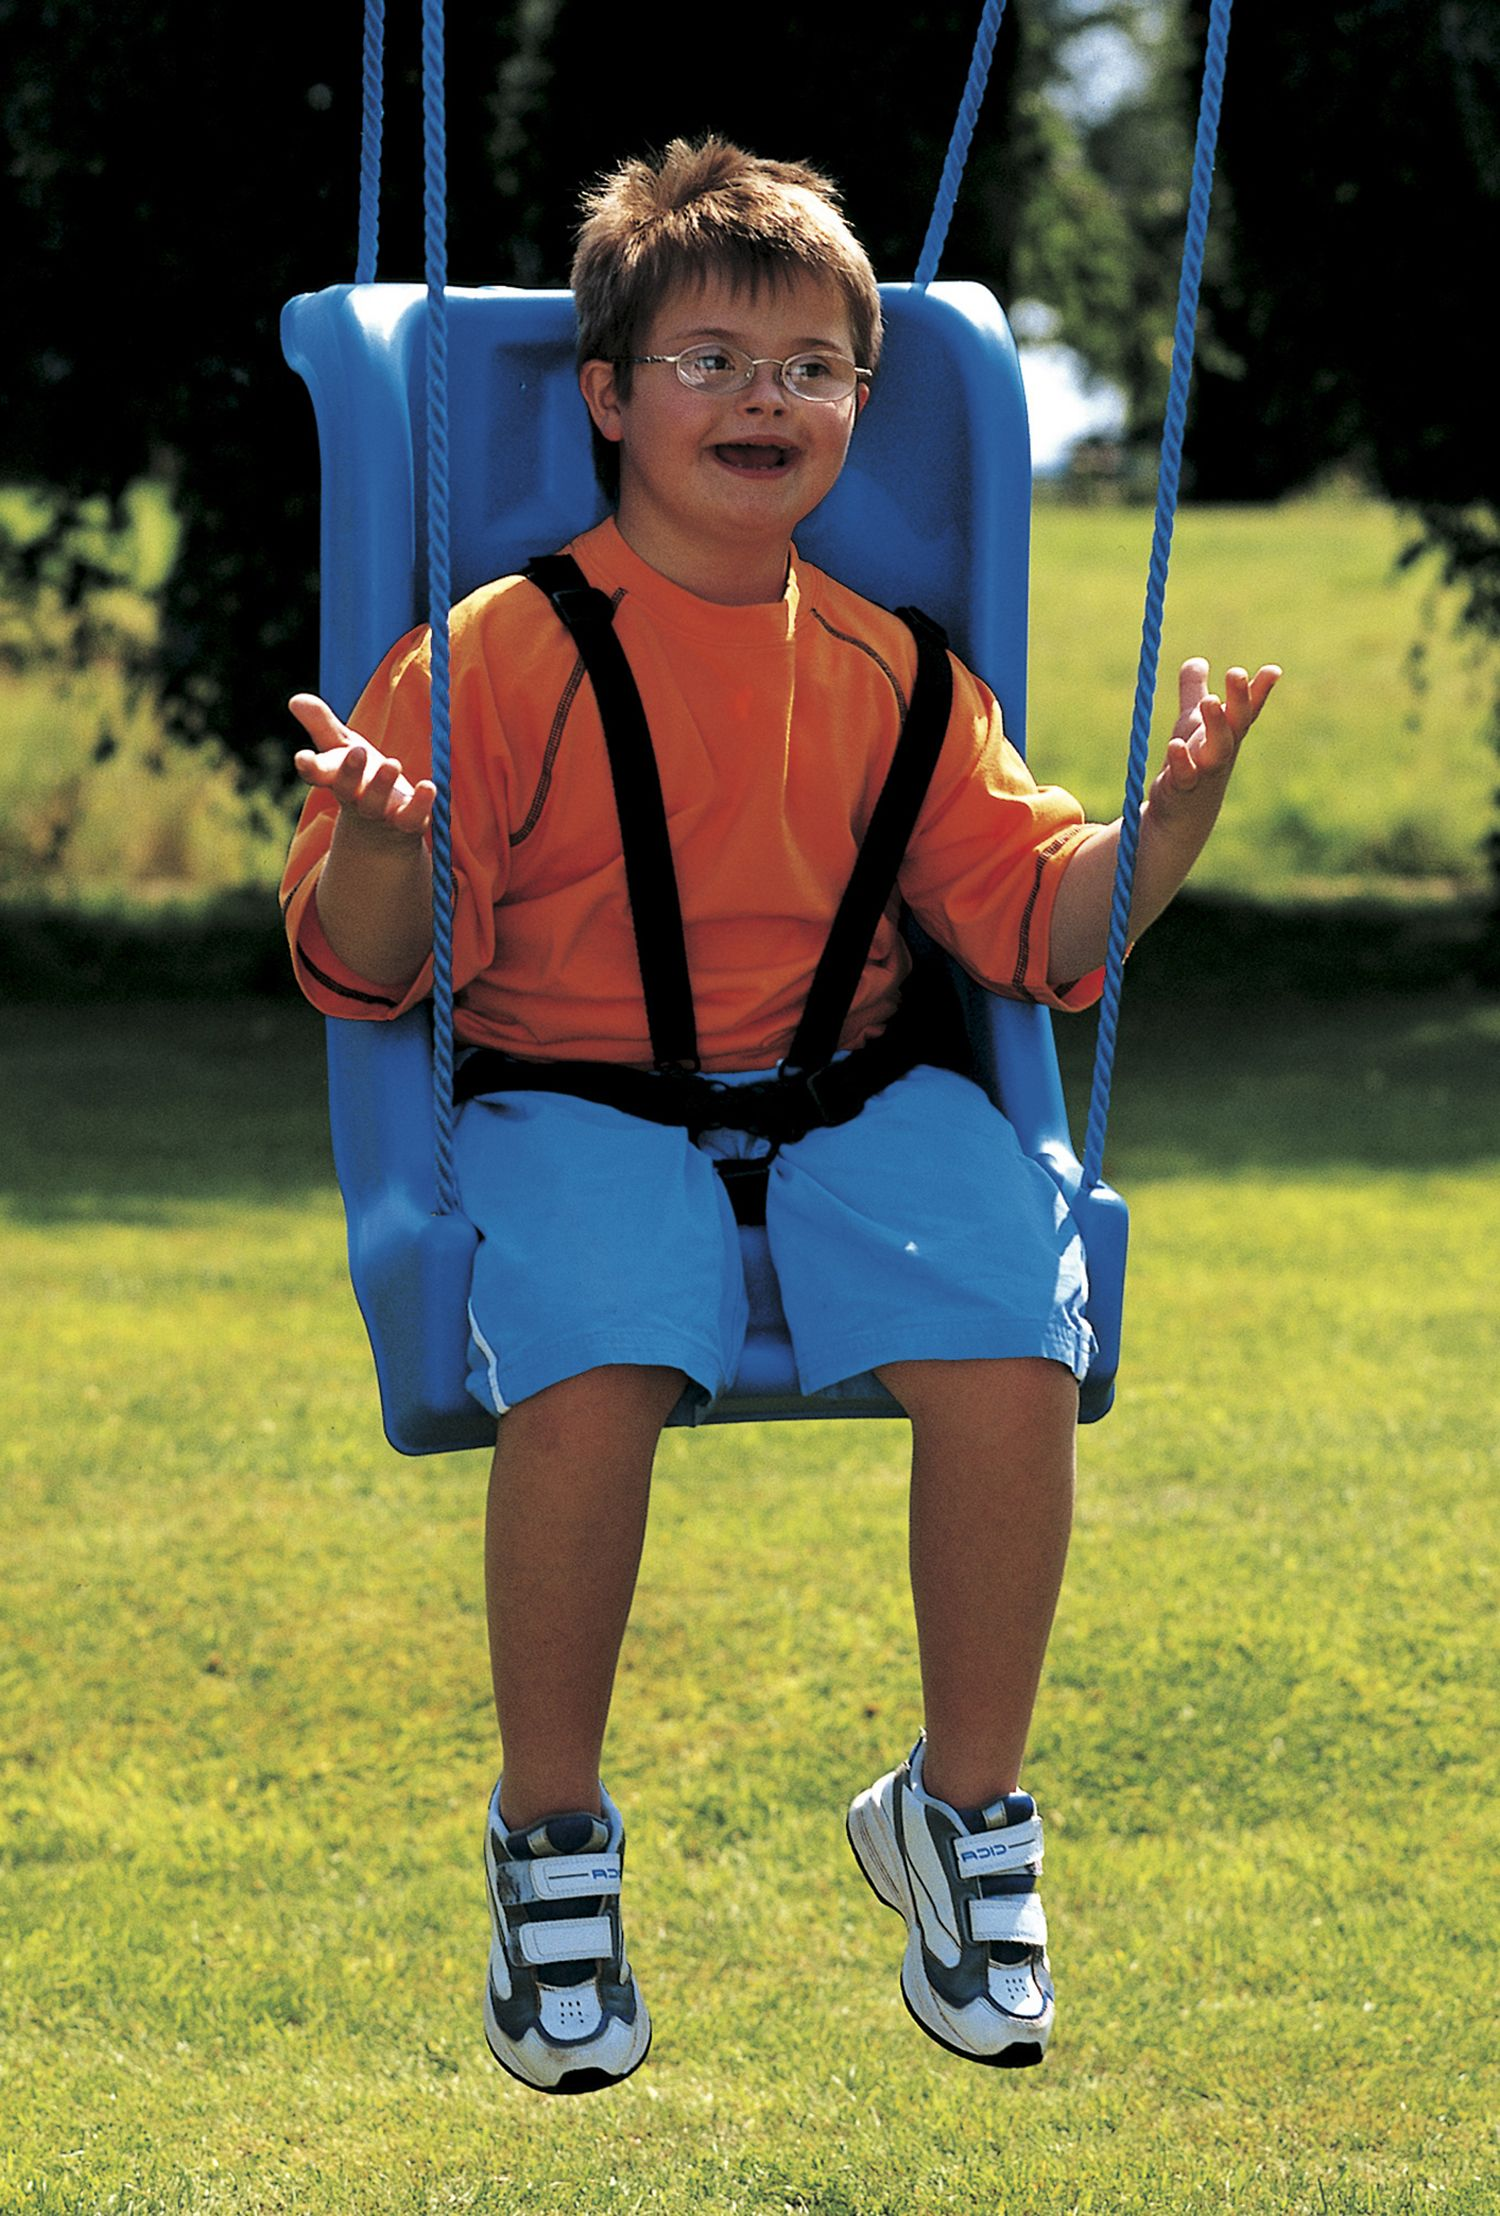 Especial Needs High Backed Adaptive Swing Seat Has Been